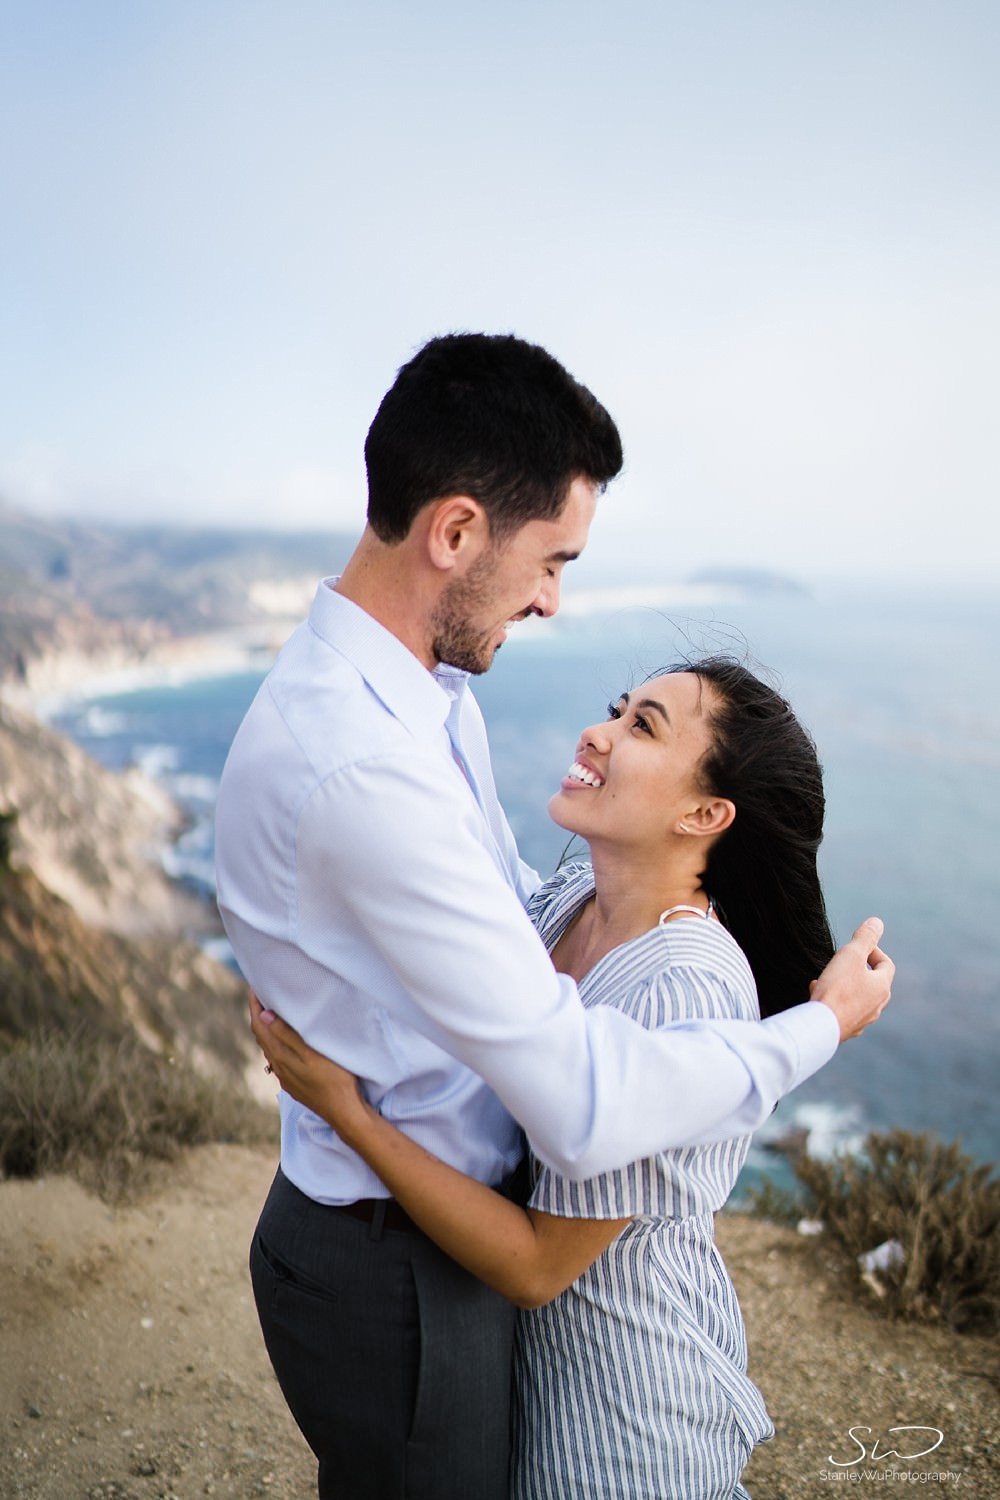 big-sur-travel-adventure-engagement-session_0020.jpg